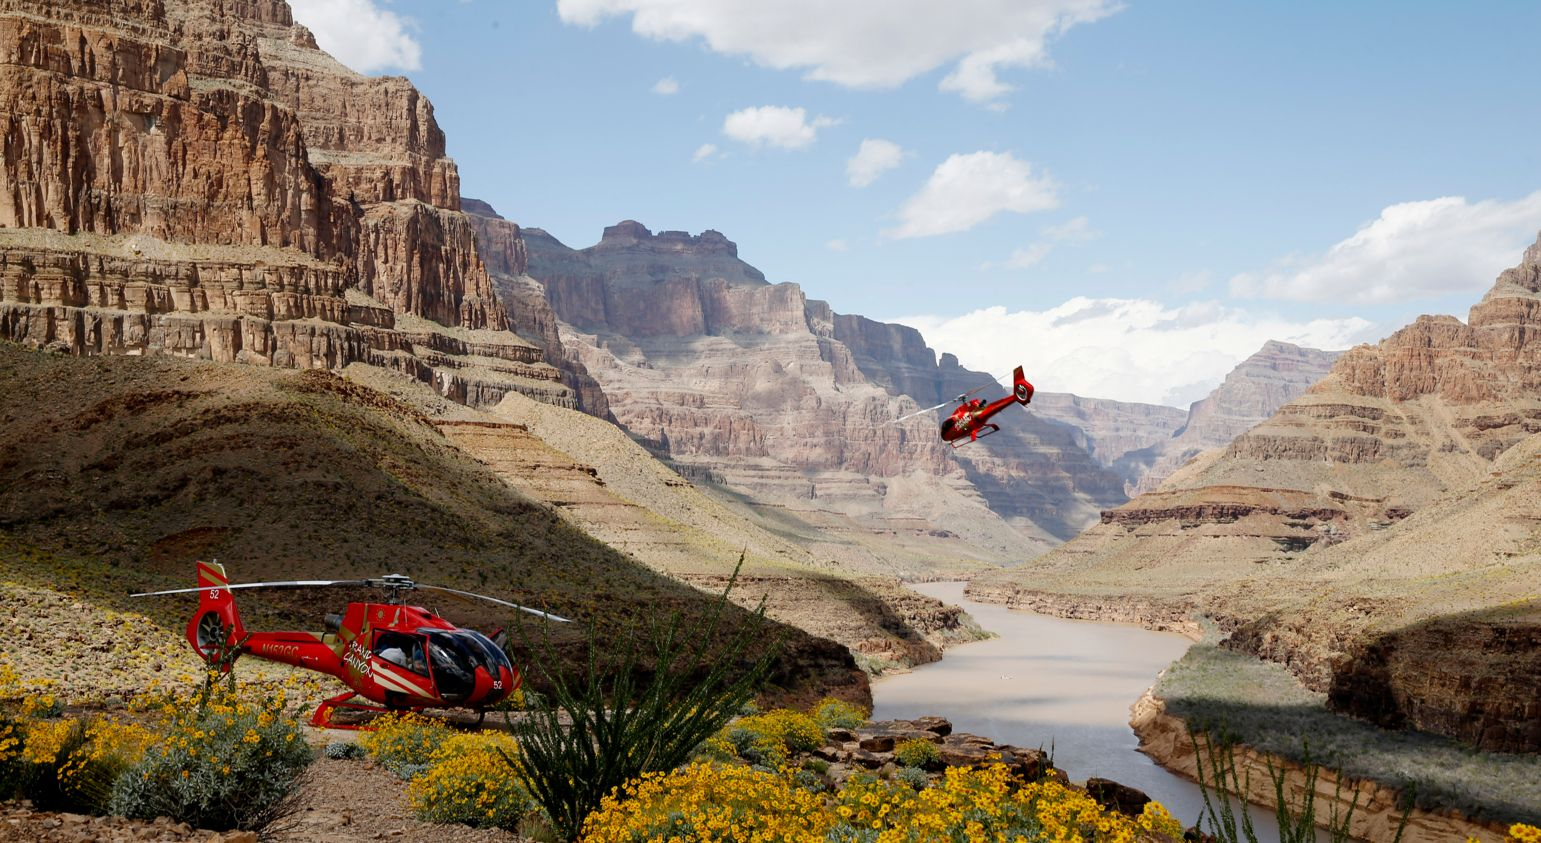 Two helicopter landings at the bottom of the Grand Canyon.